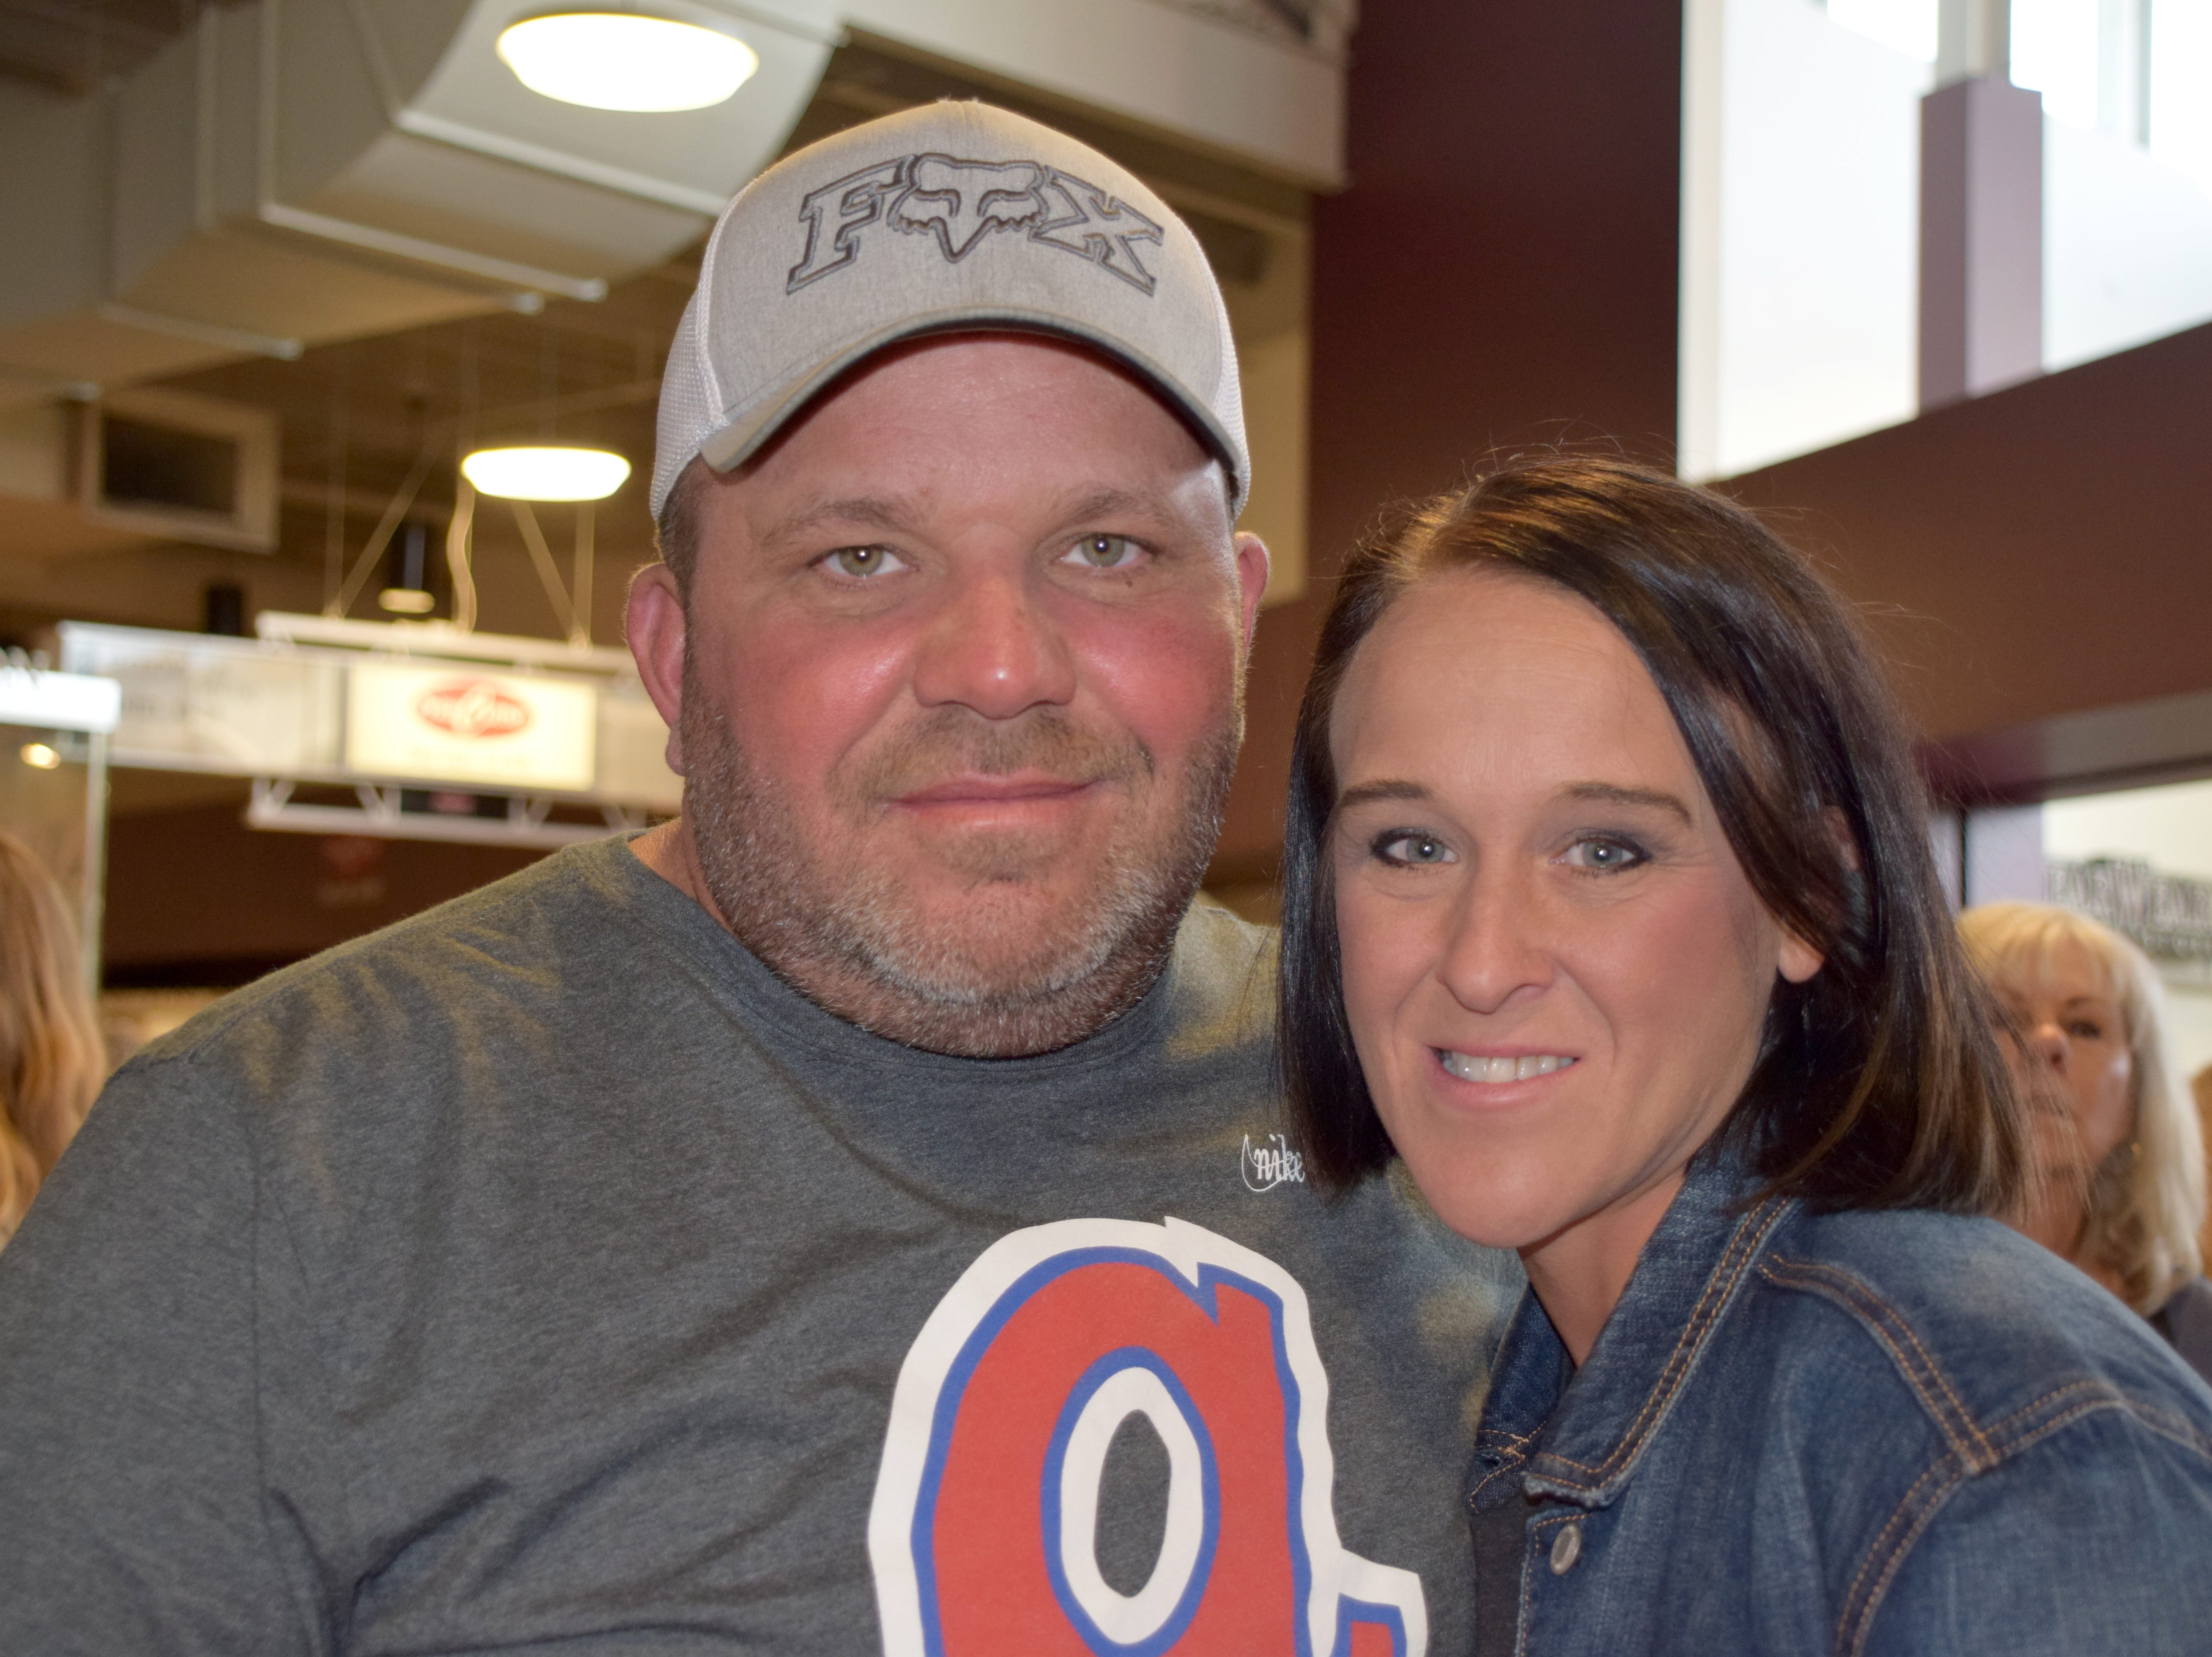 Jeff and Stacey Grissom